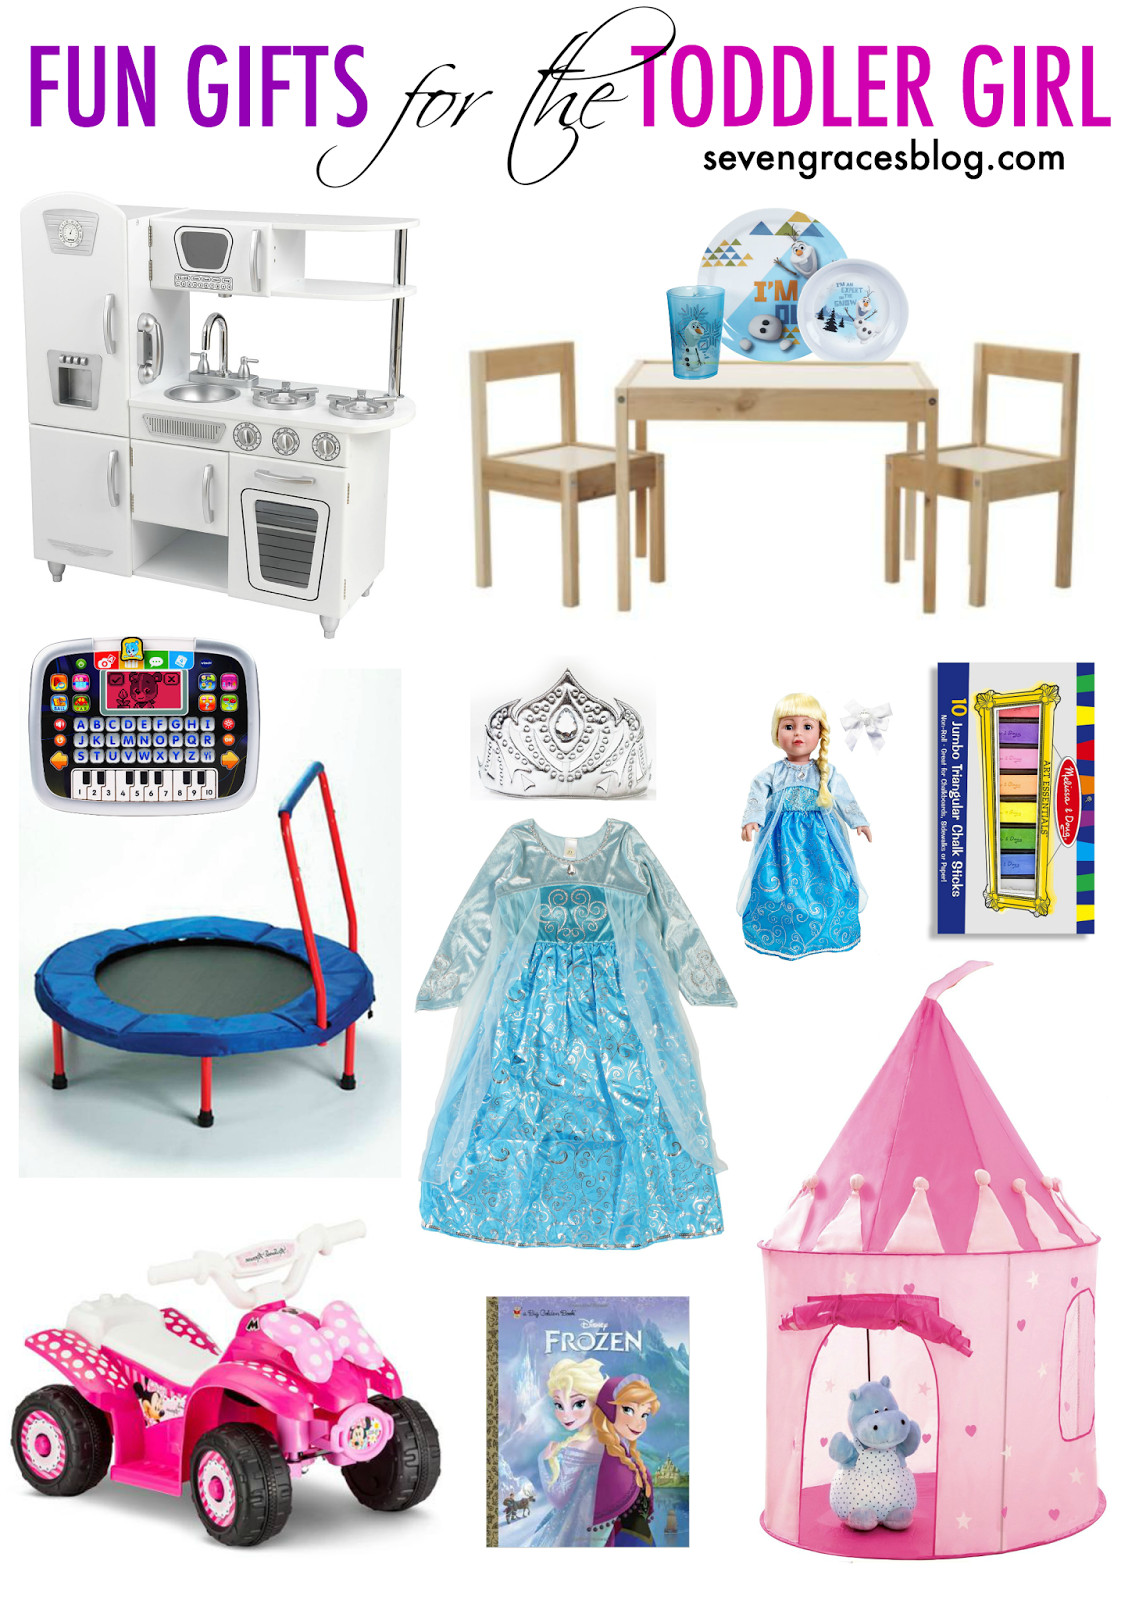 Best ideas about Toddler Girls Gift Ideas . Save or Pin Fun Gifts for the Toddler Girl Seven Graces Now.